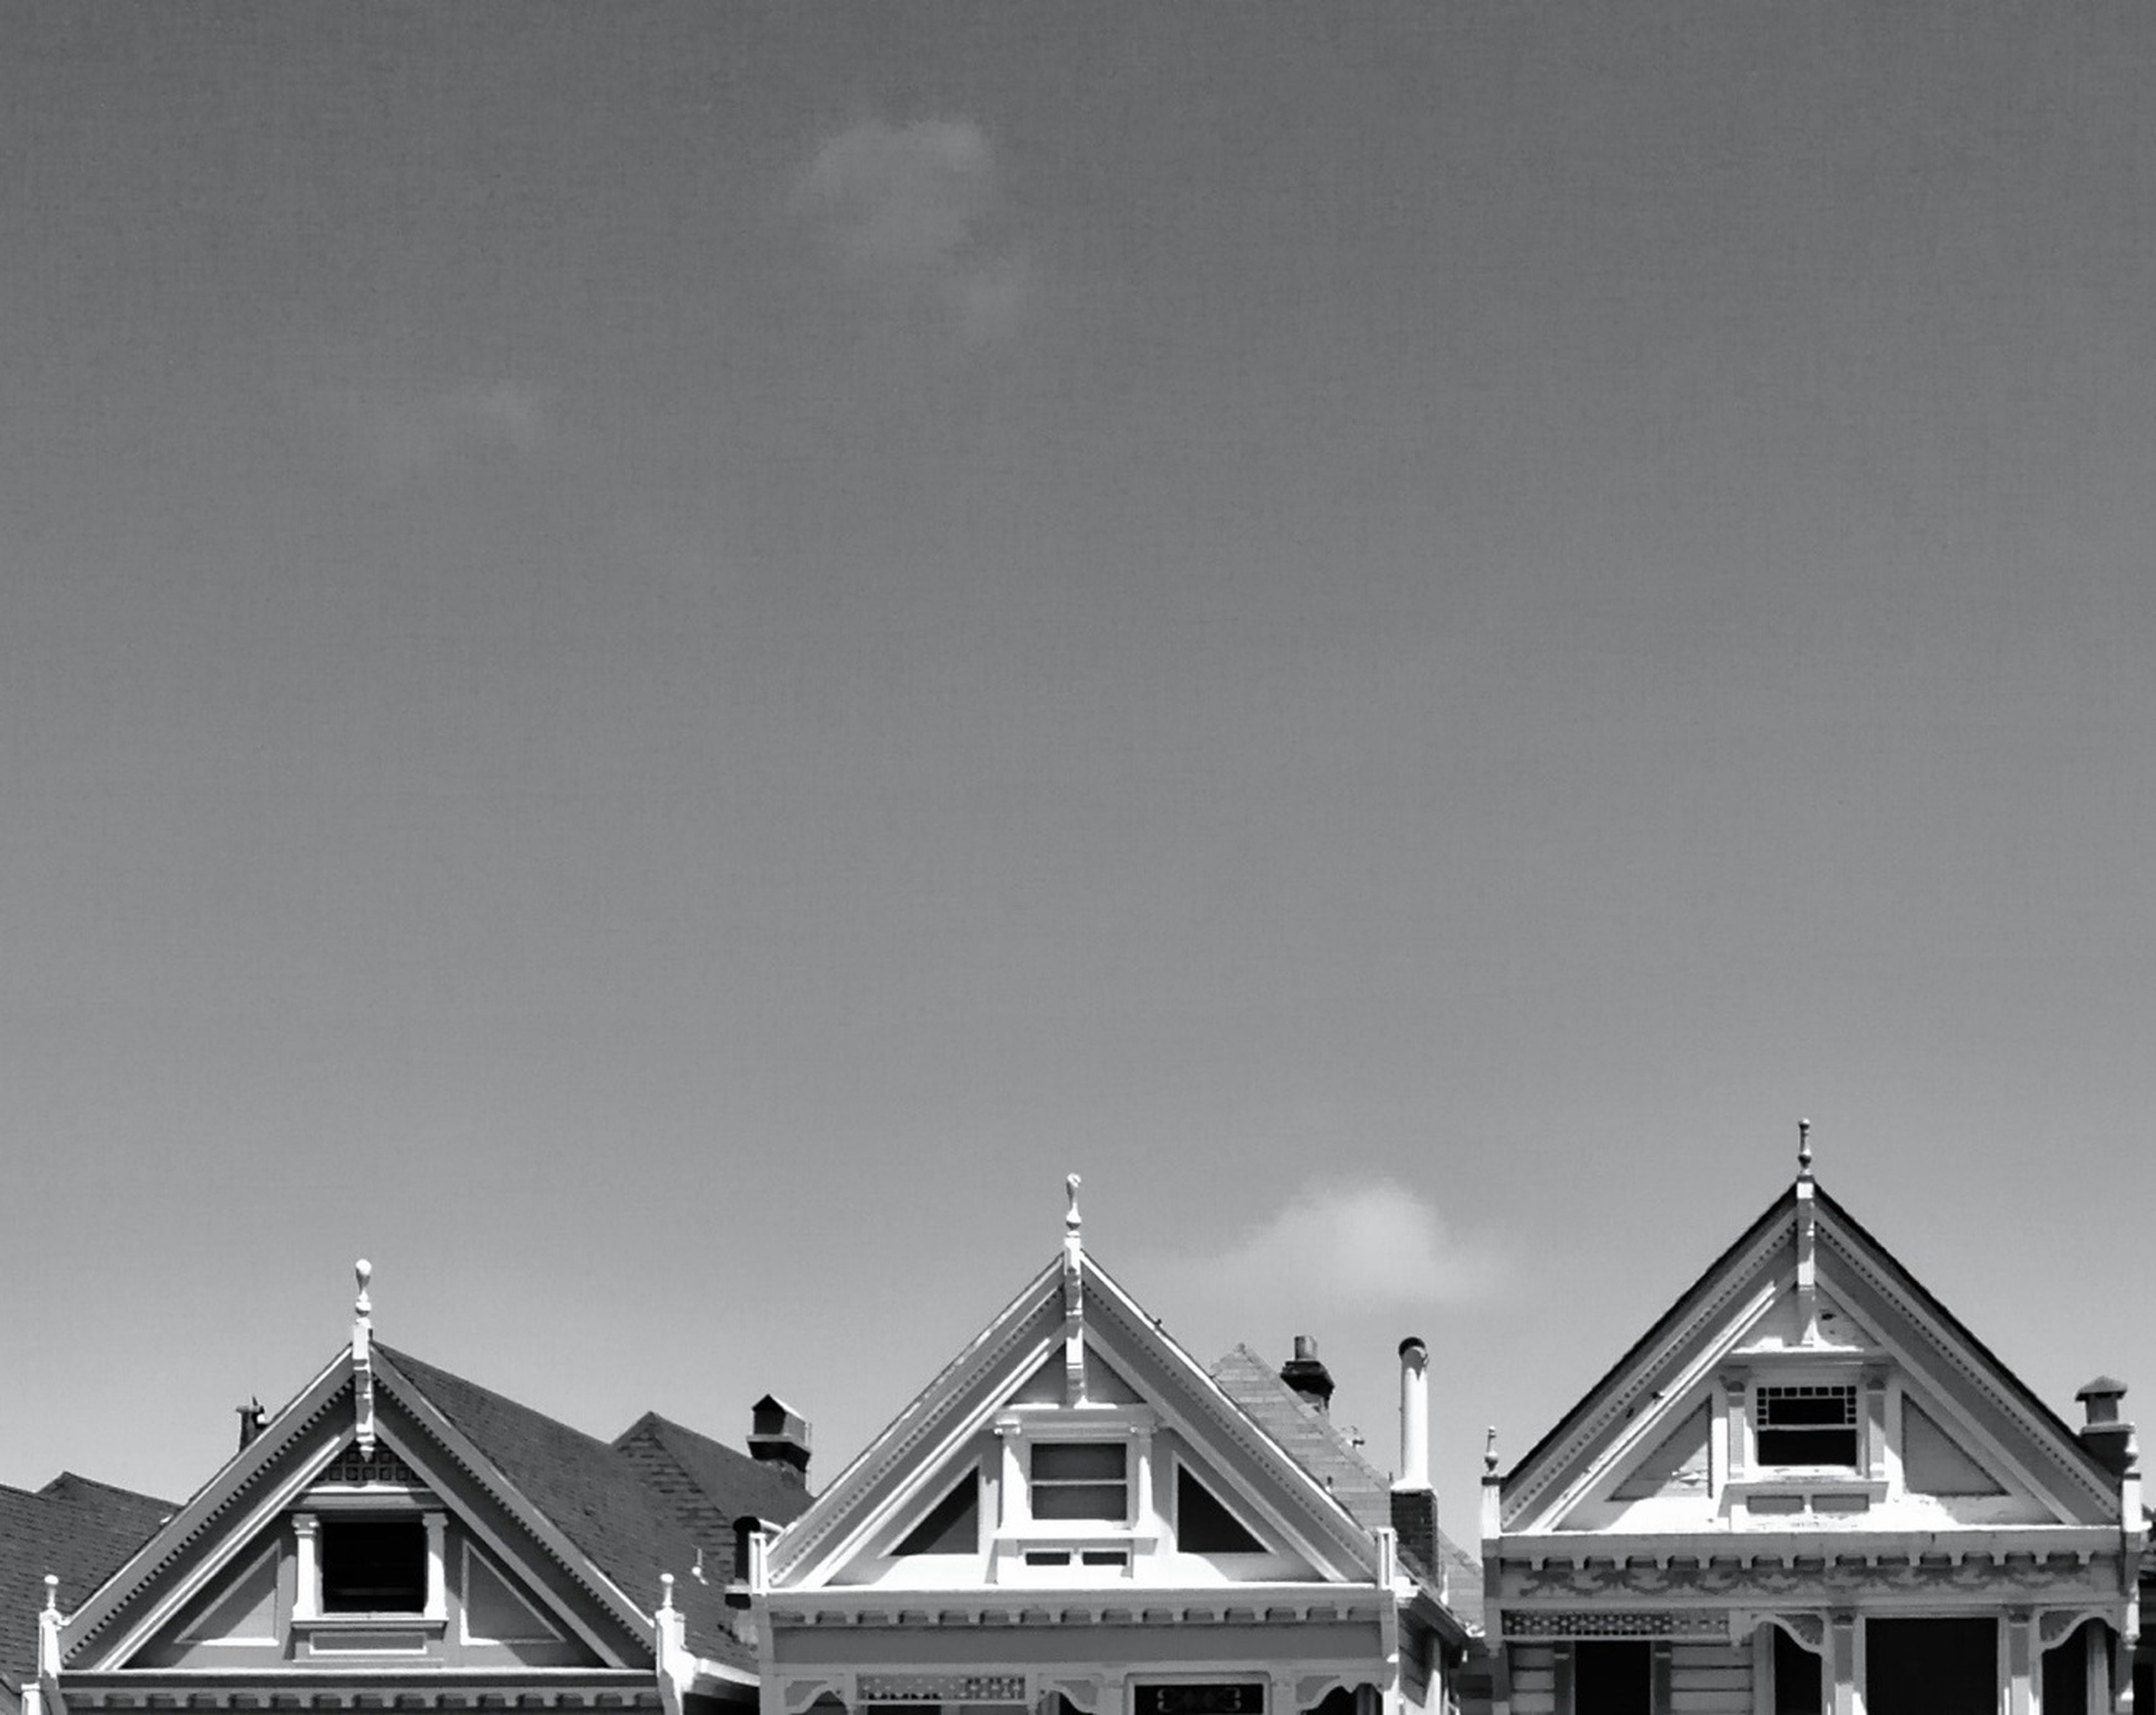 architecture, building exterior, built structure, low angle view, high section, sky, copy space, clear sky, church, religion, outdoors, place of worship, window, day, house, building, no people, spirituality, roof